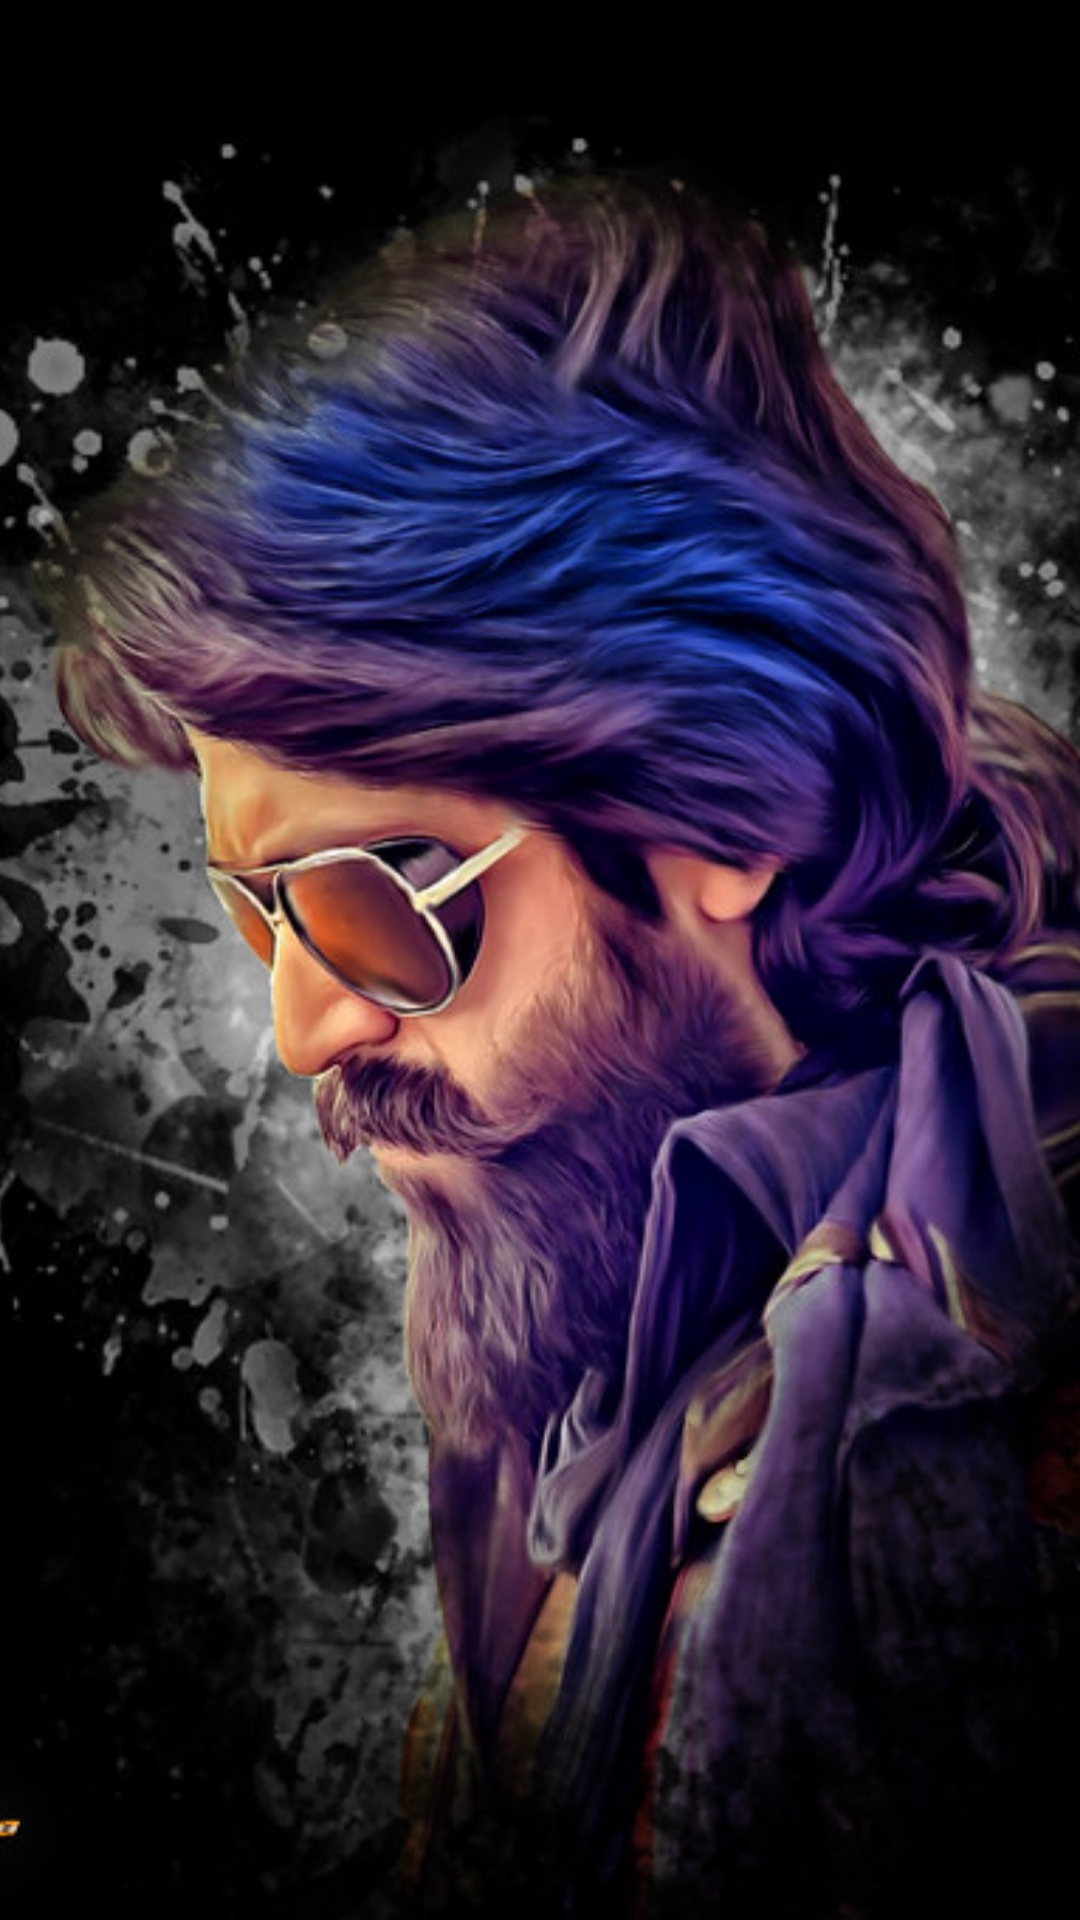 KGF 2 Wallpapers - Top Best KGF 2 Movie ...